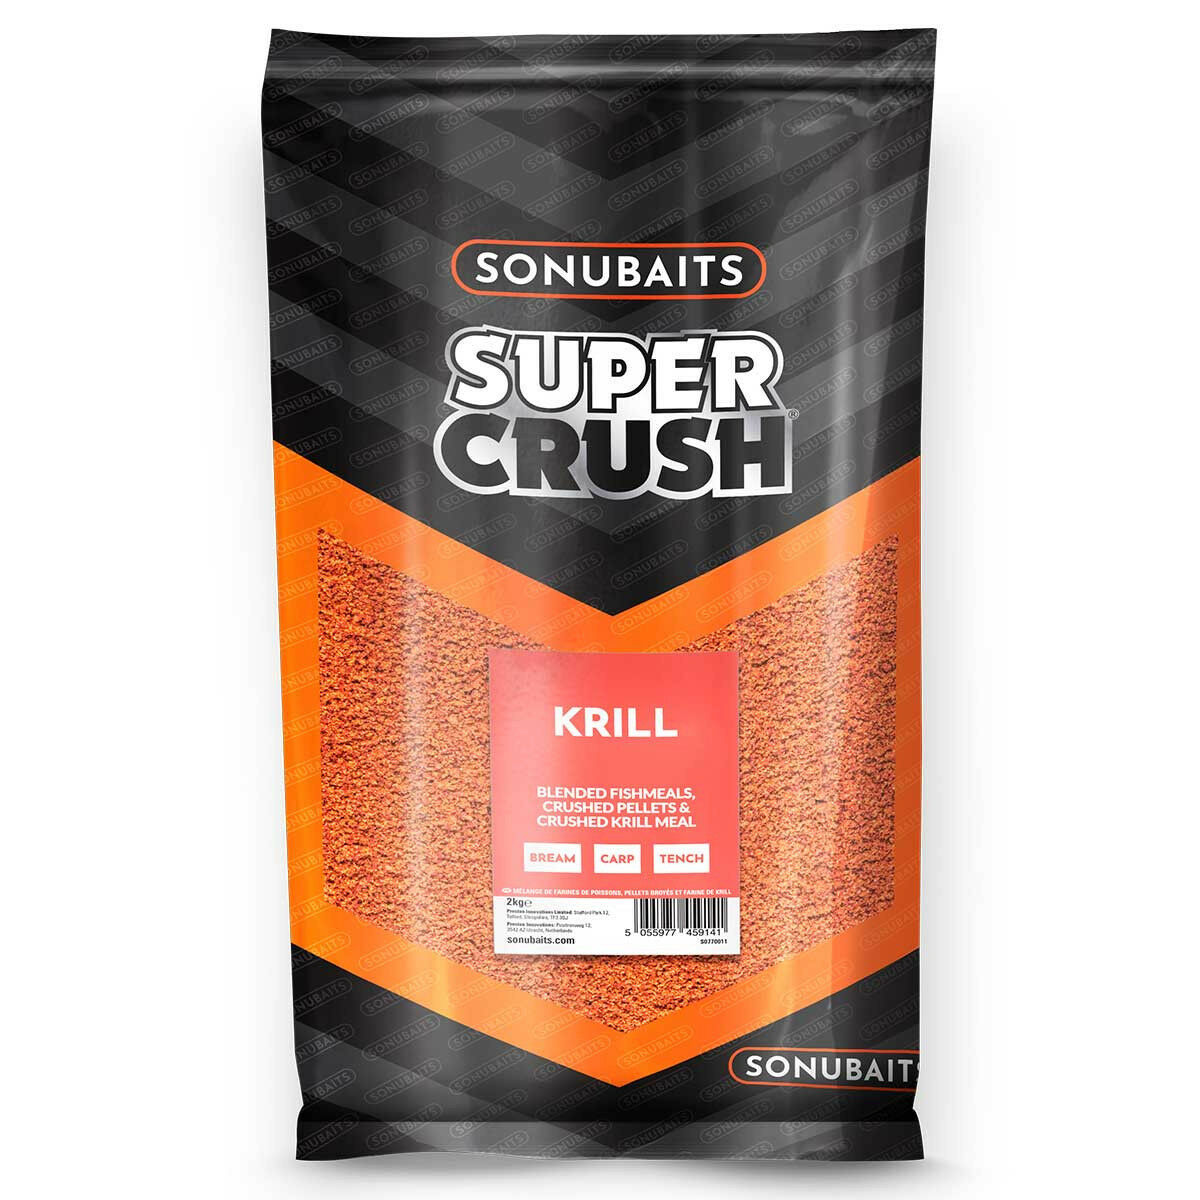 Sonubaits Supercrush Krill Groundbait 10kg